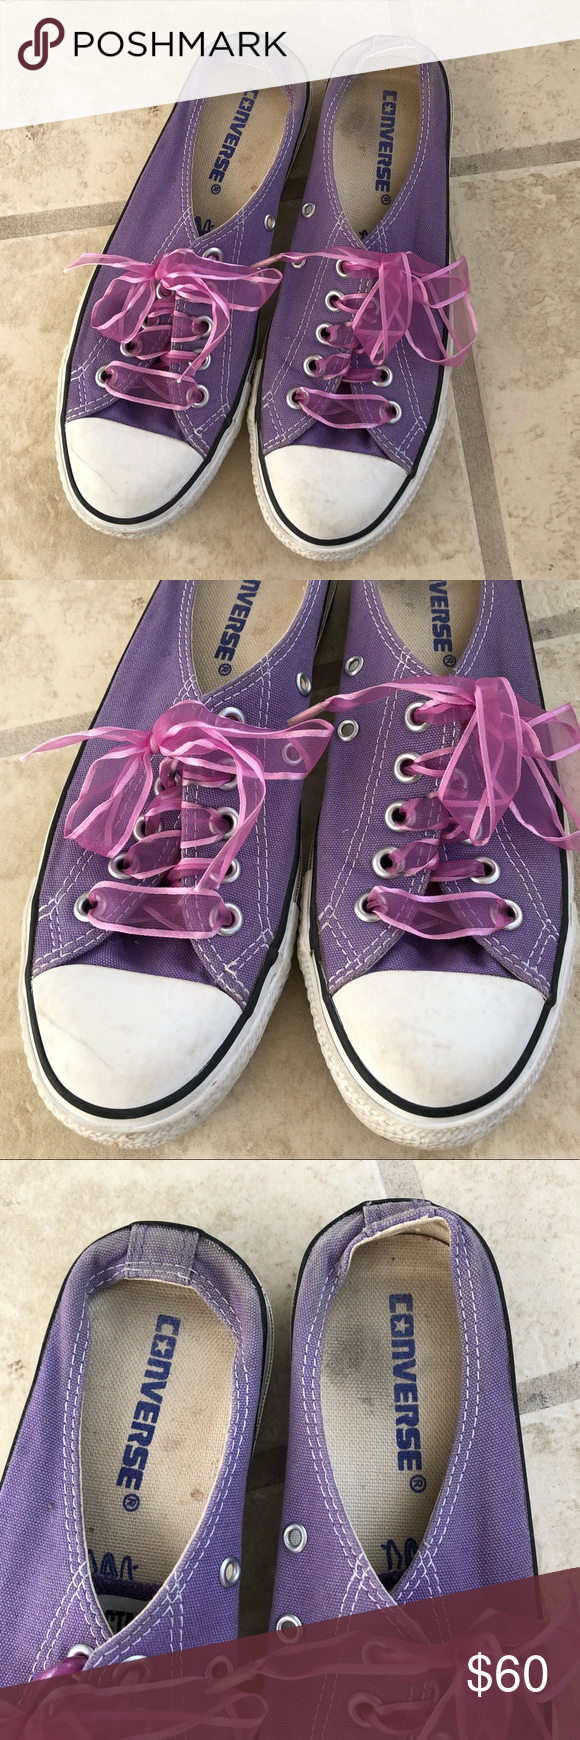 fc1d8d48a667 Rare Vintage Converse Slip On Mule Vintage Converse Mule in a violet color  with ribbon laces. Some minor wear- please view all photos These don t come  ...